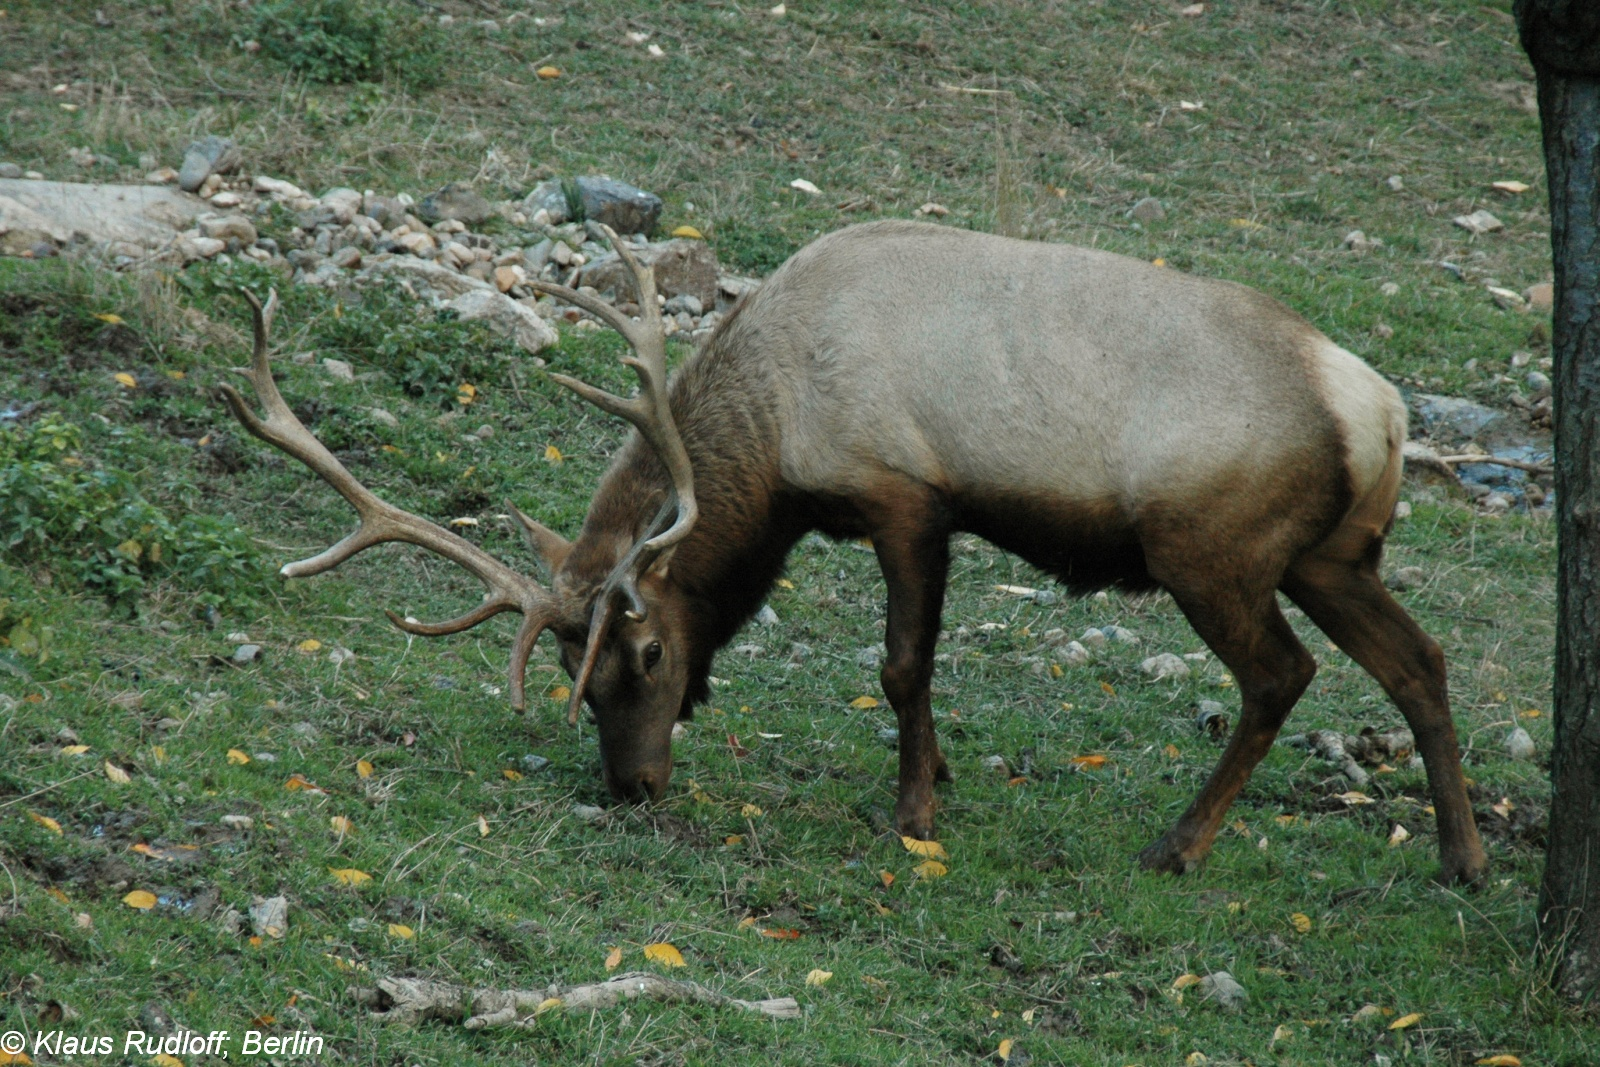 Merriam's Elk